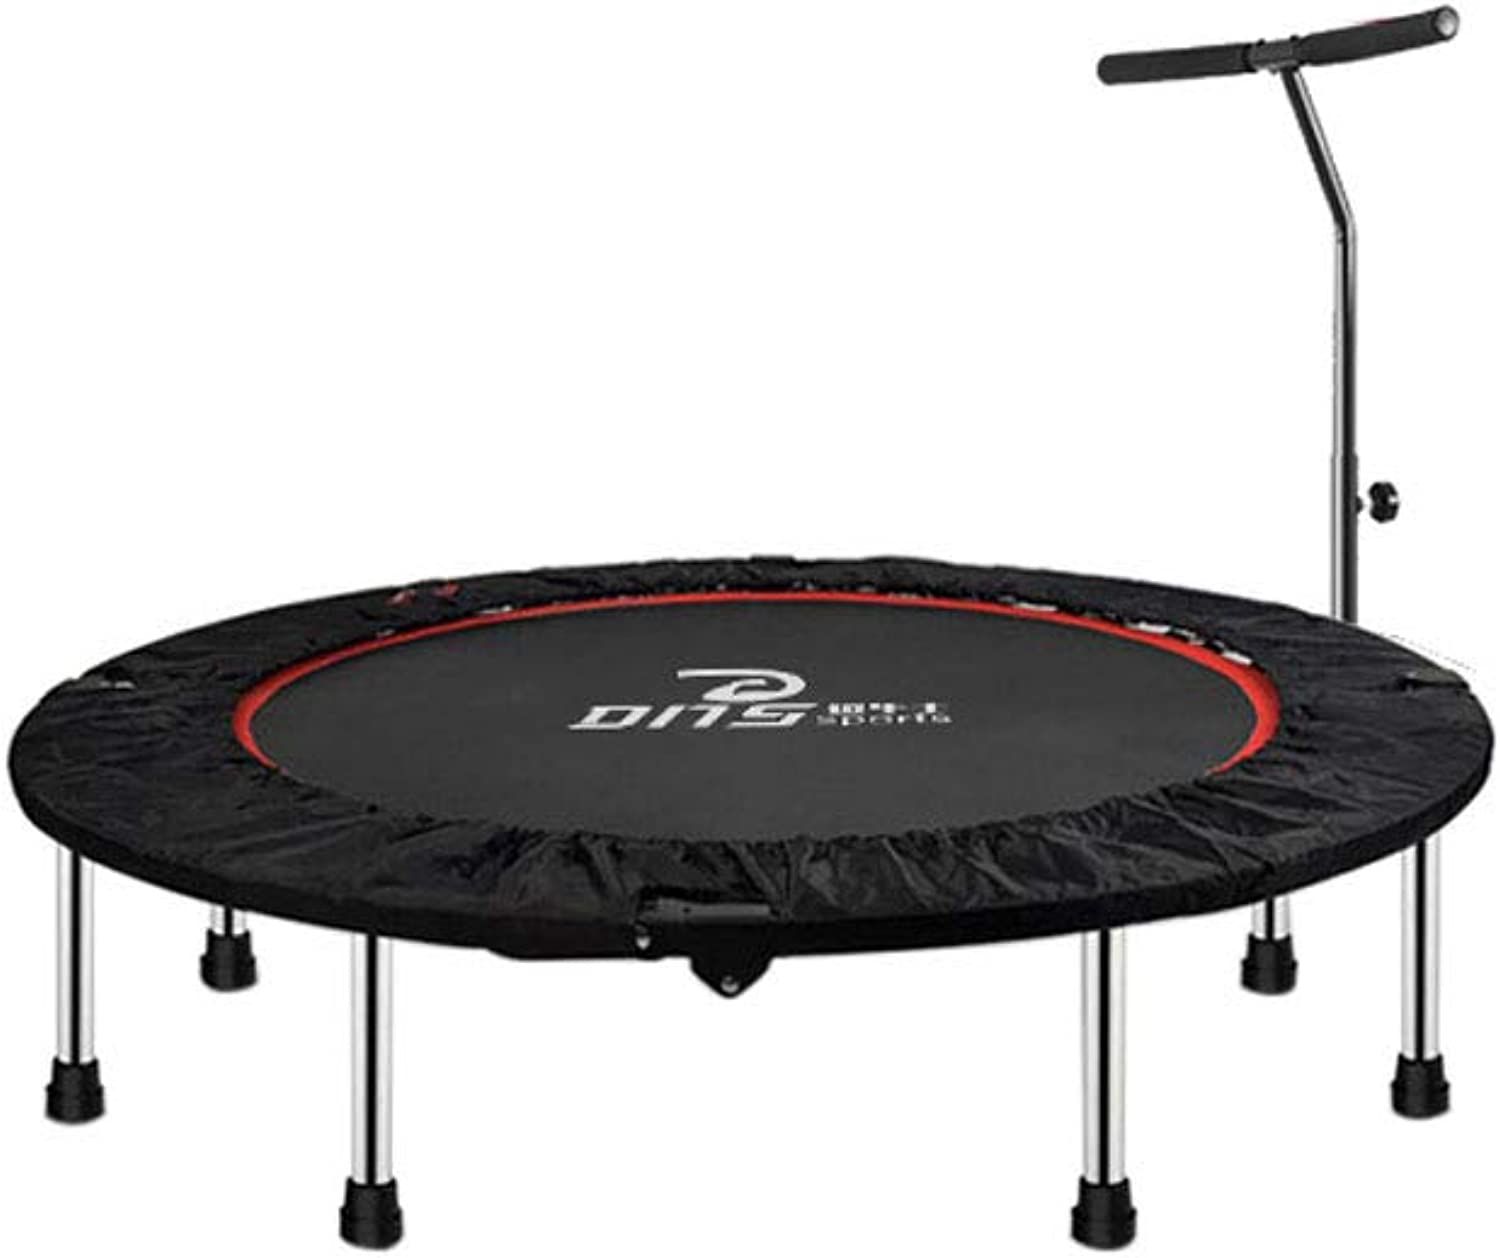 Mesurn Fitness Trampoline, High Load-Bearing Jump Cloth, Low-Noise Soft Rubber Foot Cover, Stable Center of Gravity, Not Easy to Roll Over, Folding and Convenient Trampoline